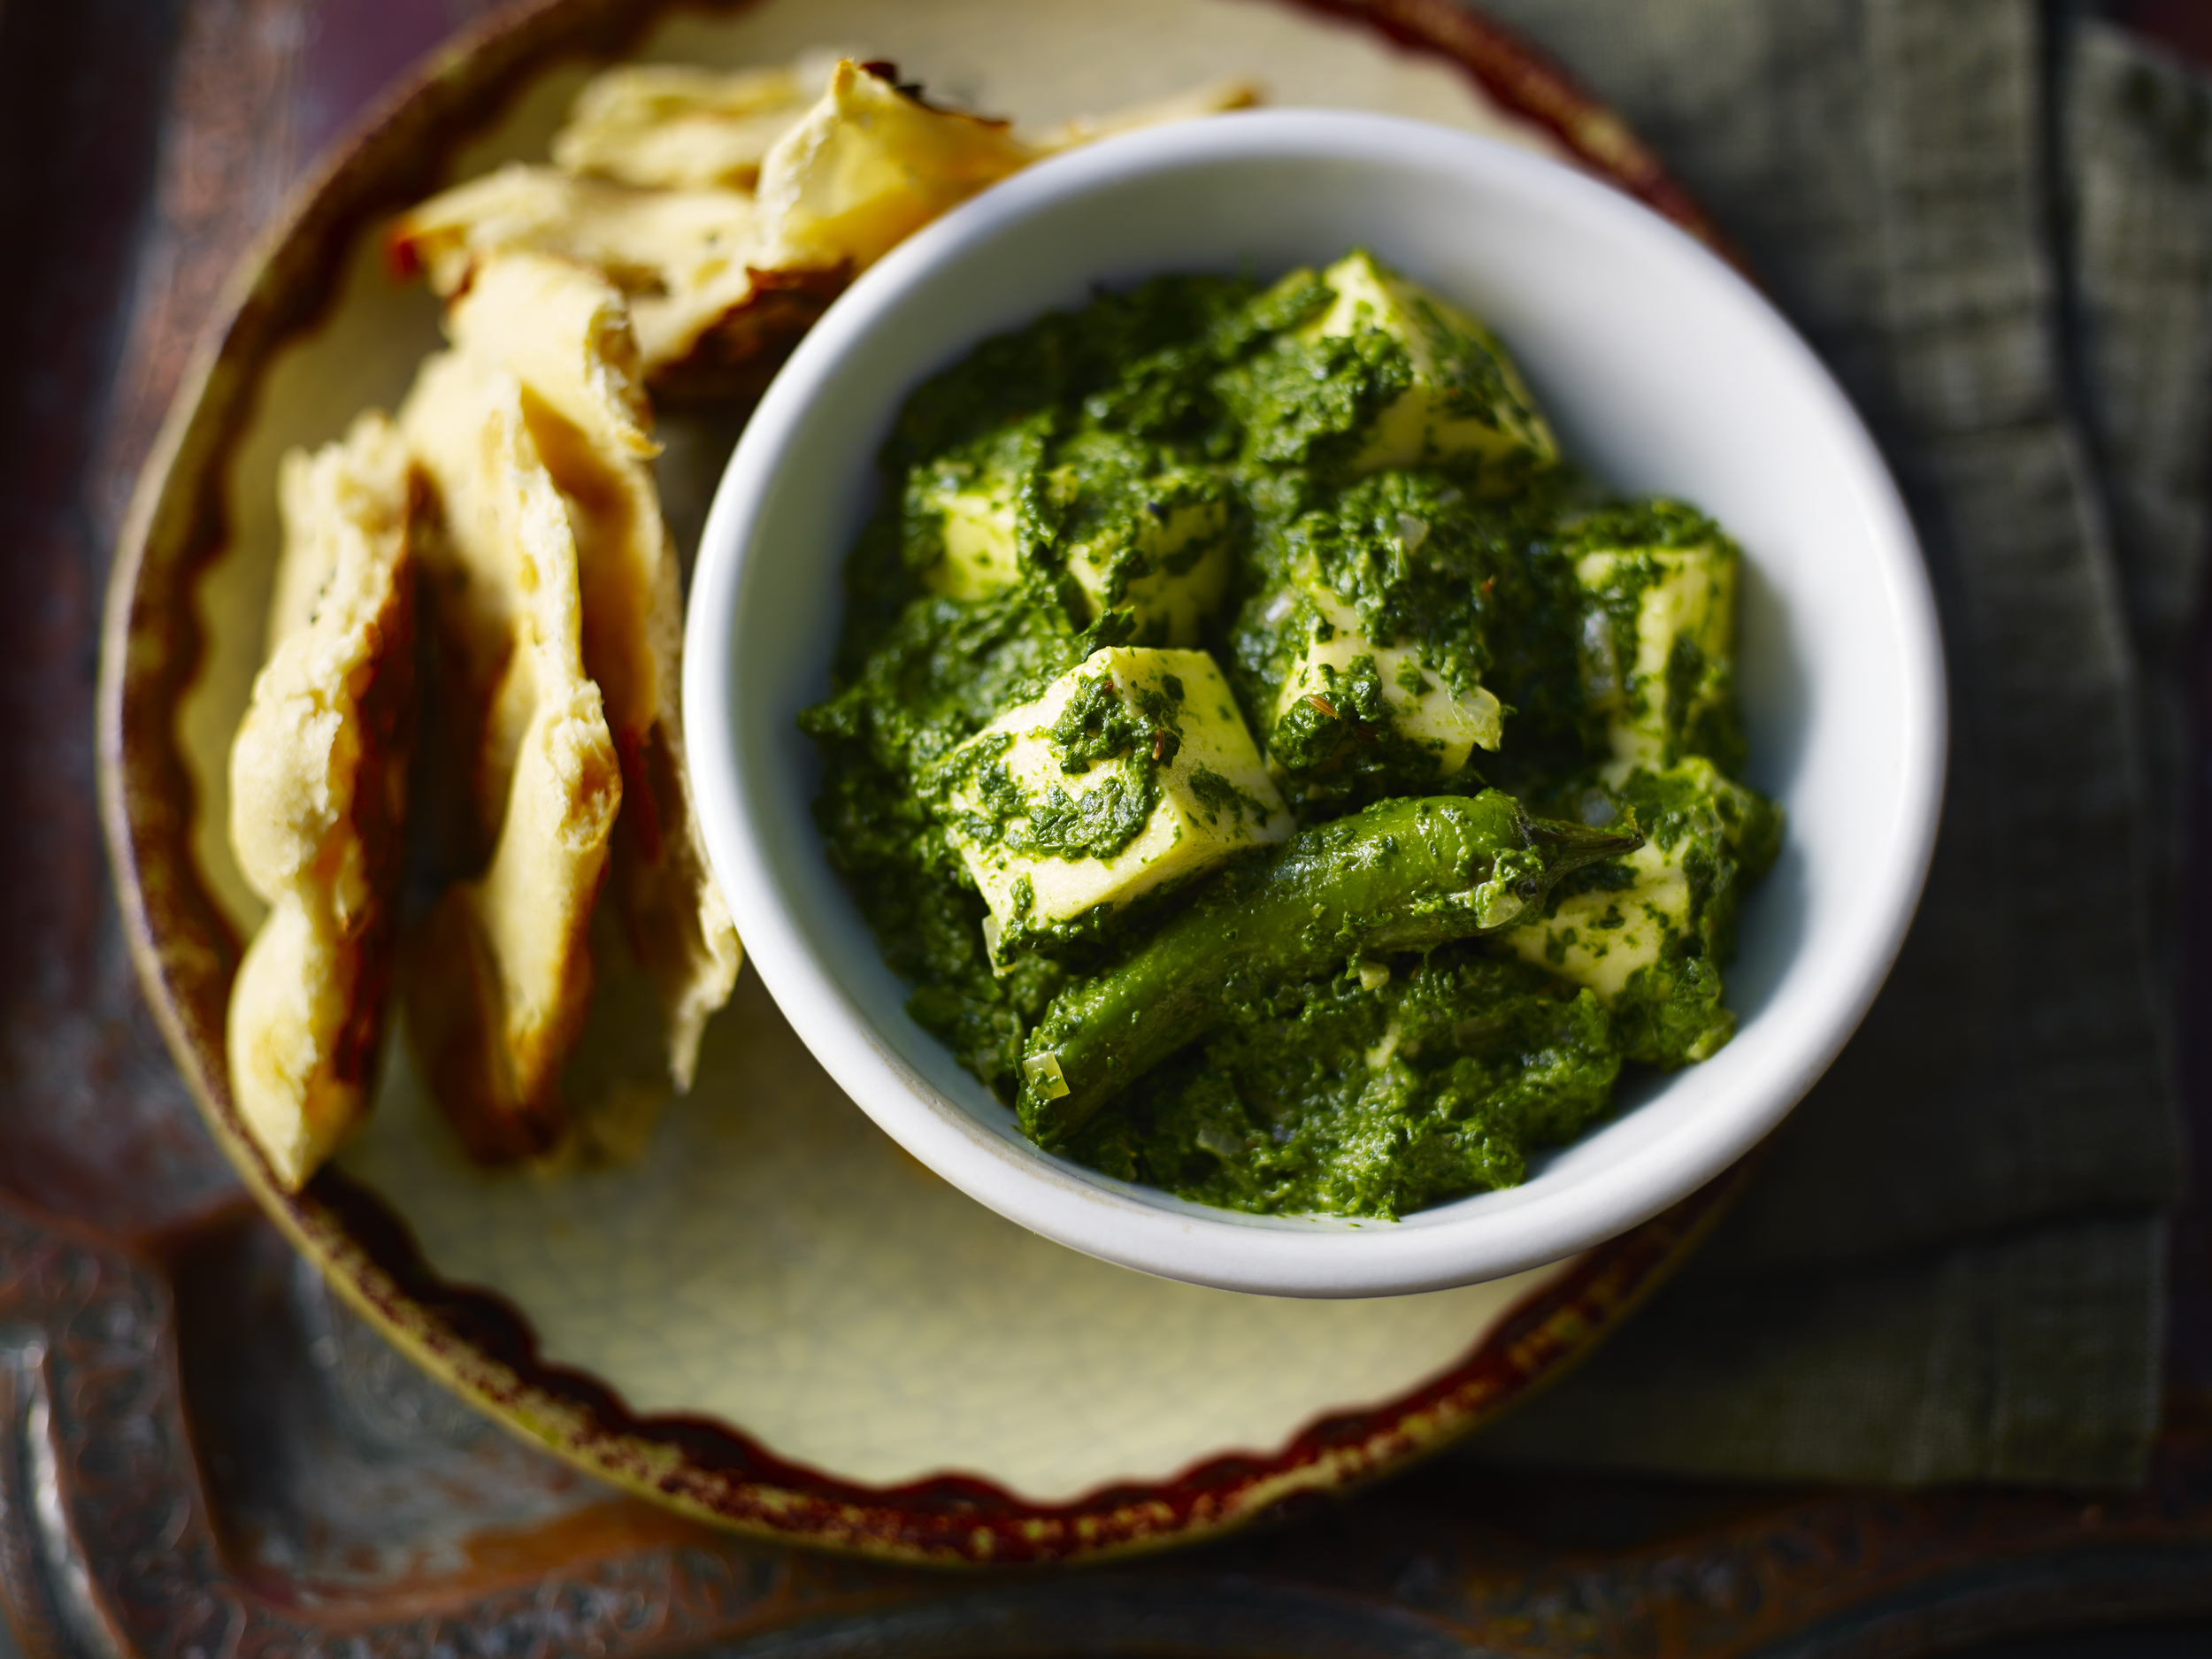 25 Paneer with spinach 2.jpg